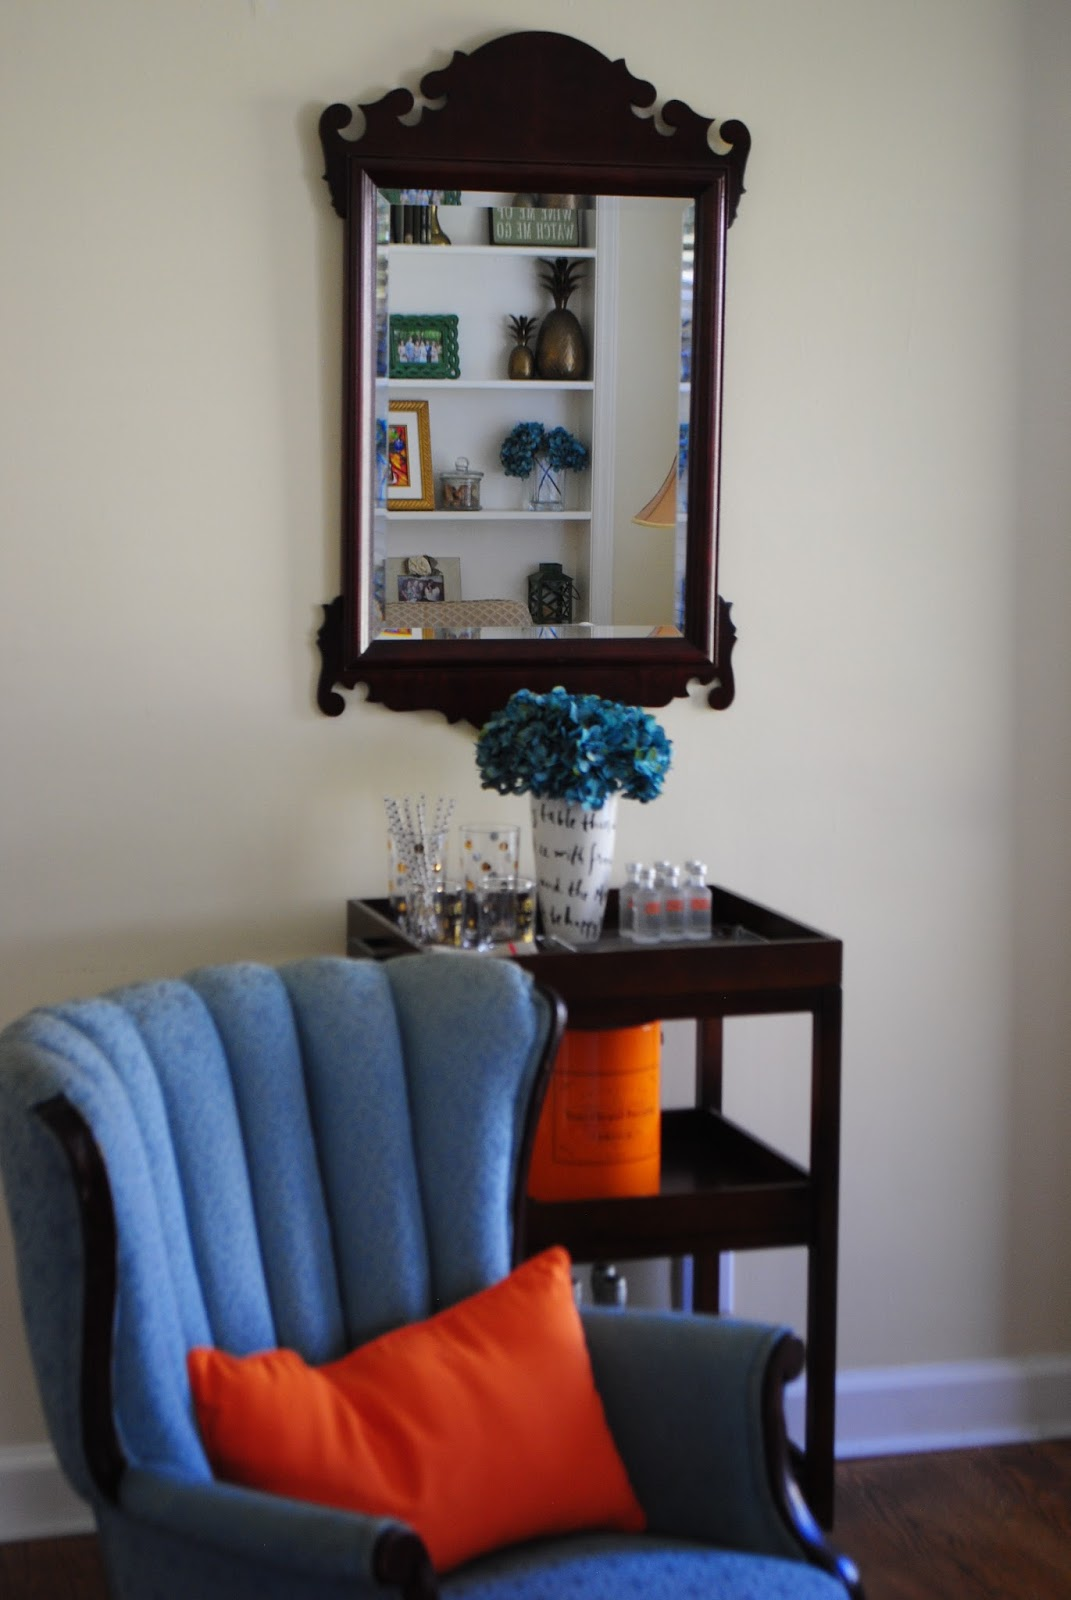 6 ways to maximize your small space 119 south apartments - Maximize small spaces property ...